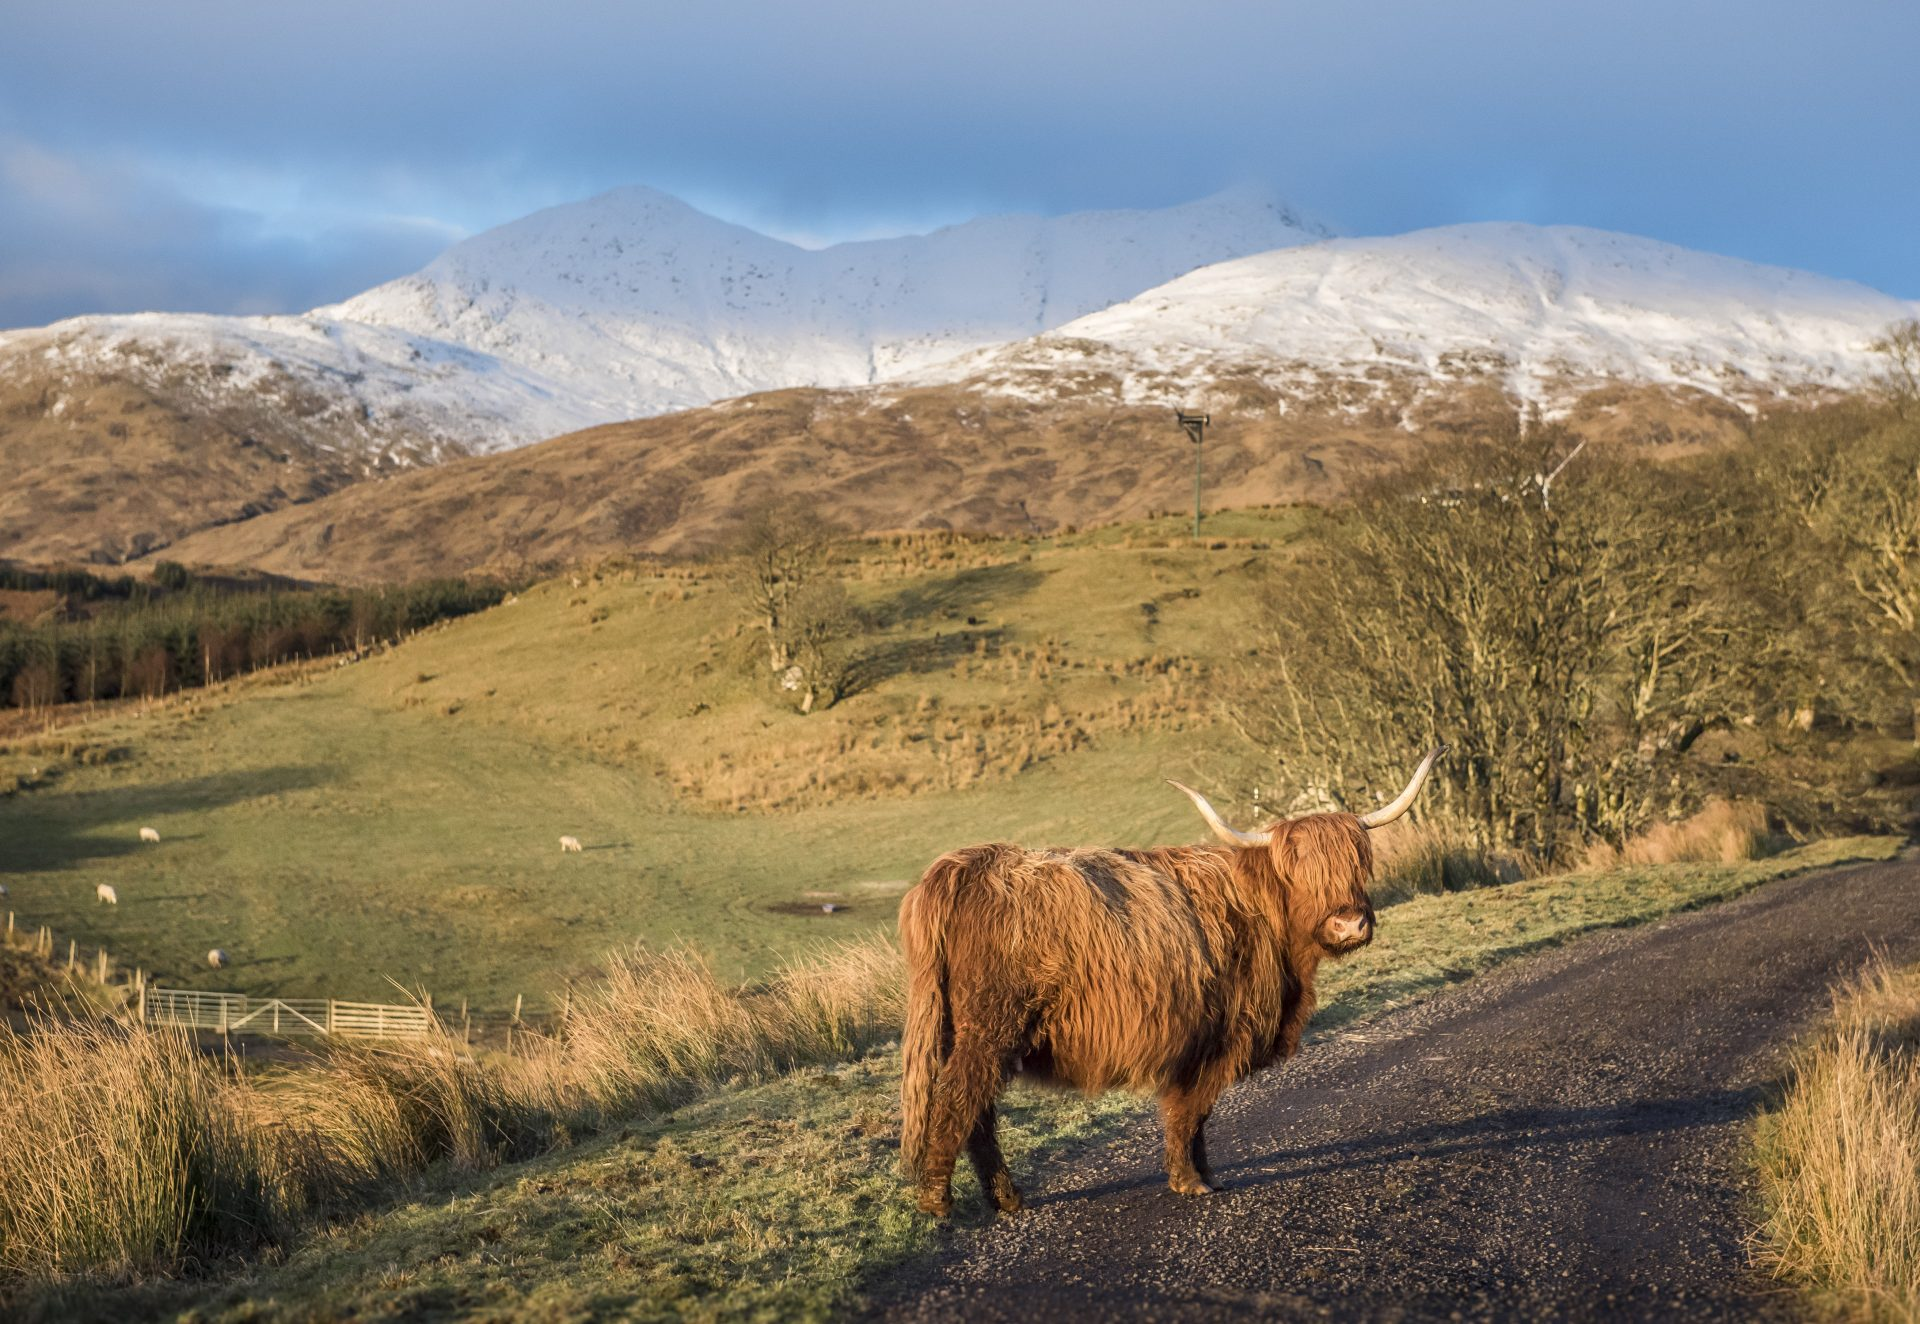 The Highlands around Ben Cruachan are rich with wildlife. Educational information on area's flora and fauna can be explored at the Cruachan Power Station visitor centre.